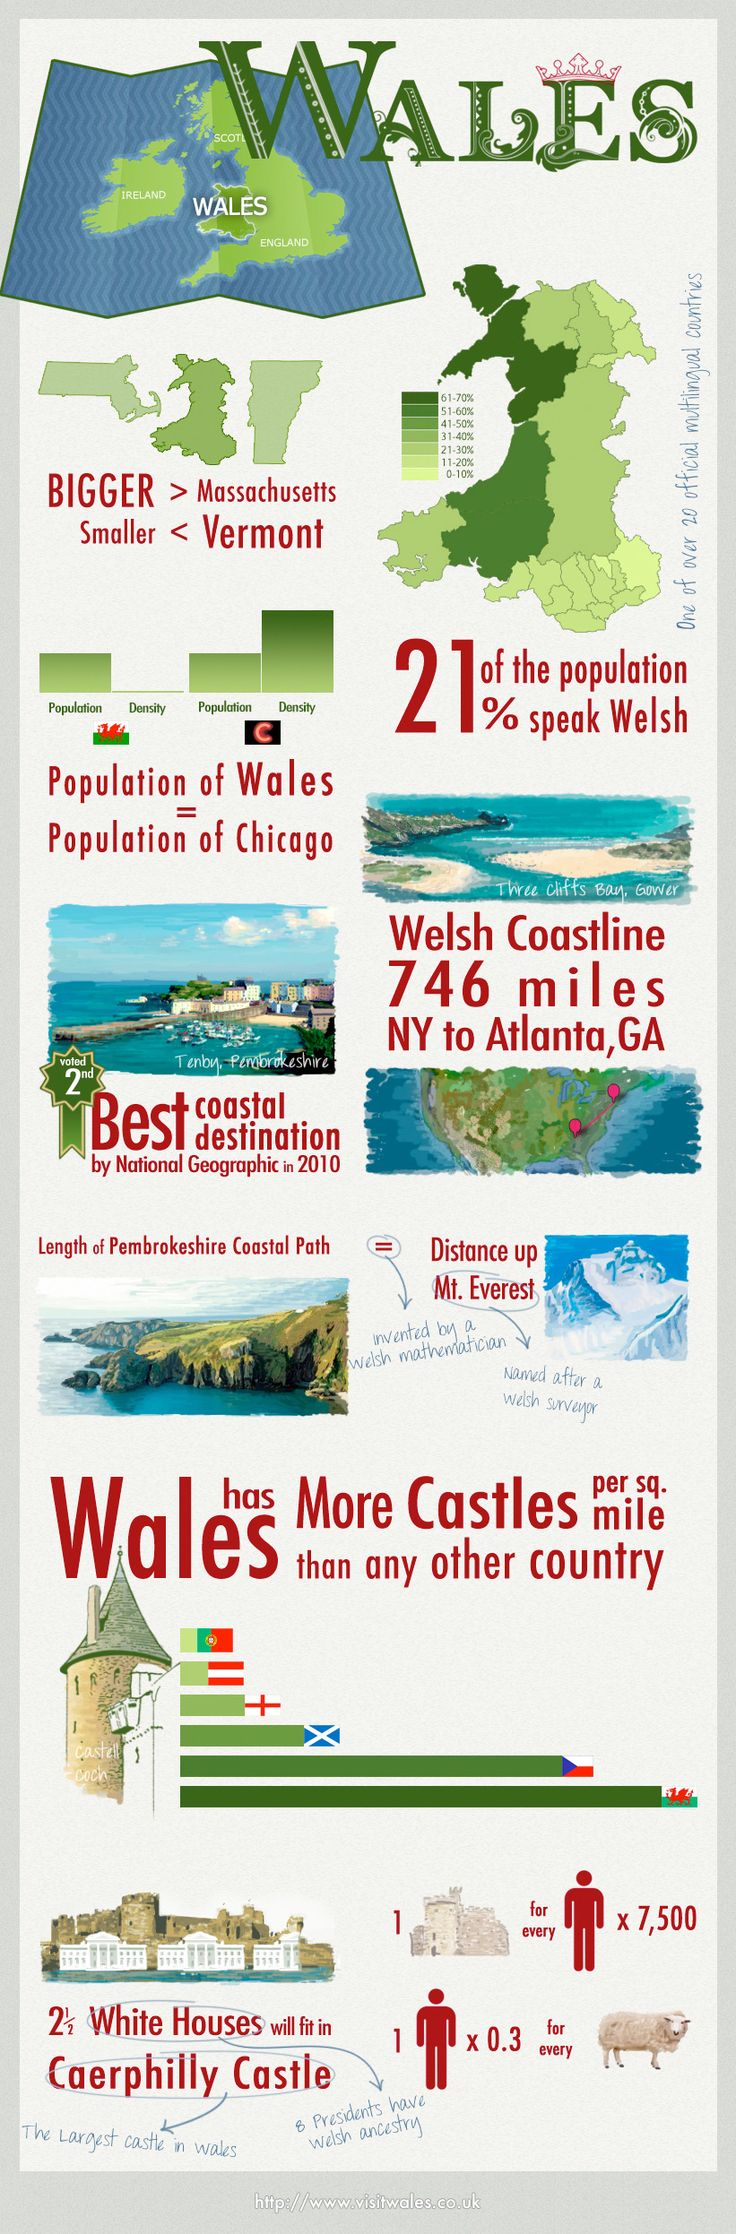 Wales Infographic - interesting facts about Wonderful Wales, the small coutnry with the big personality!